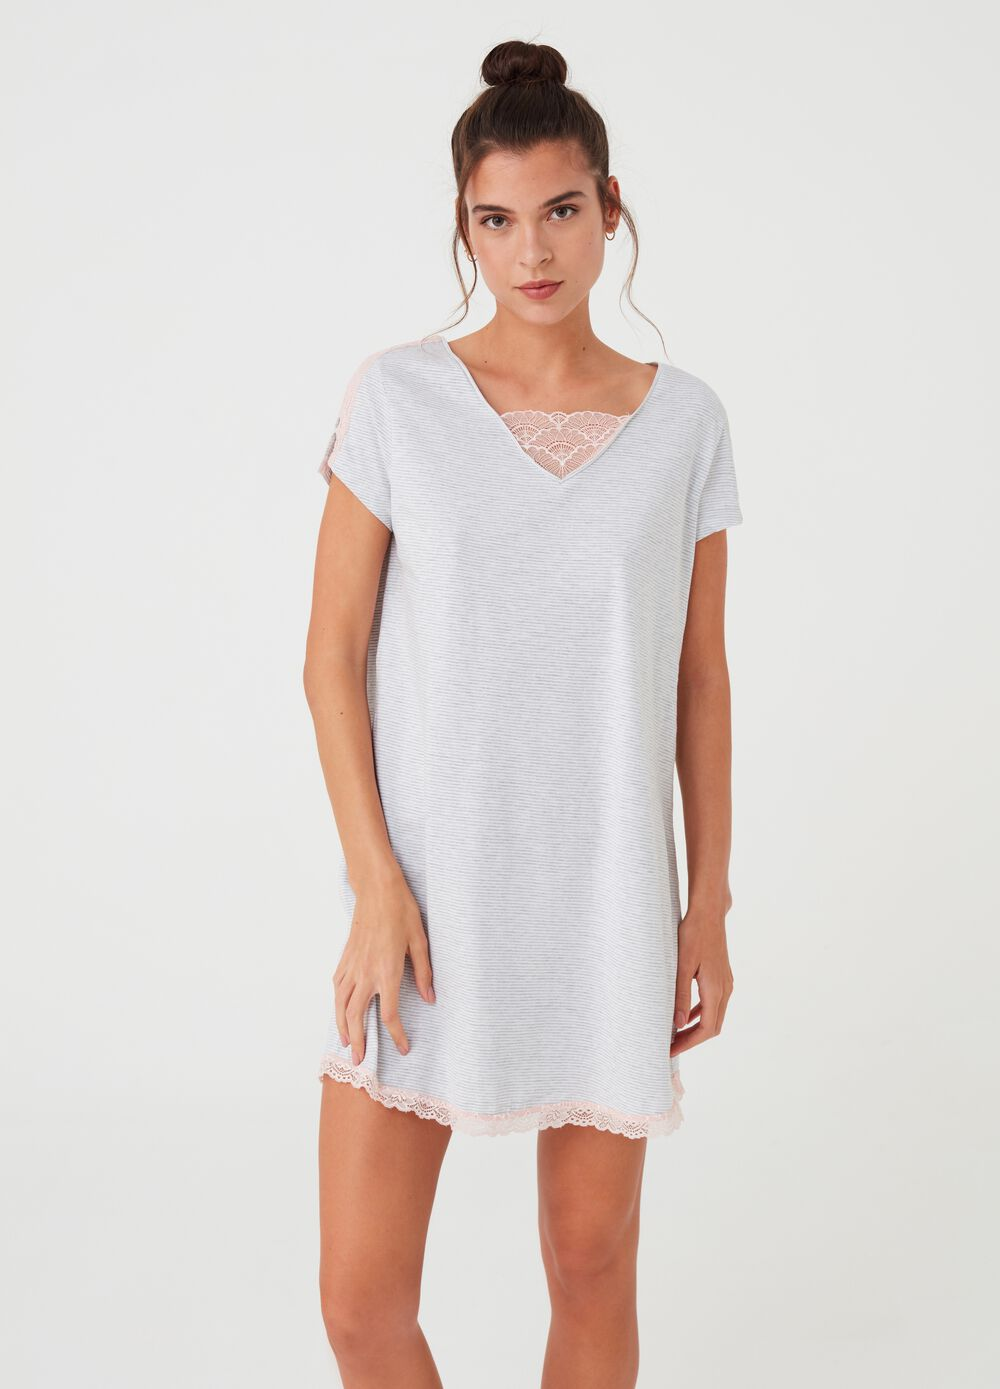 Micro-striped nightshirt with lace